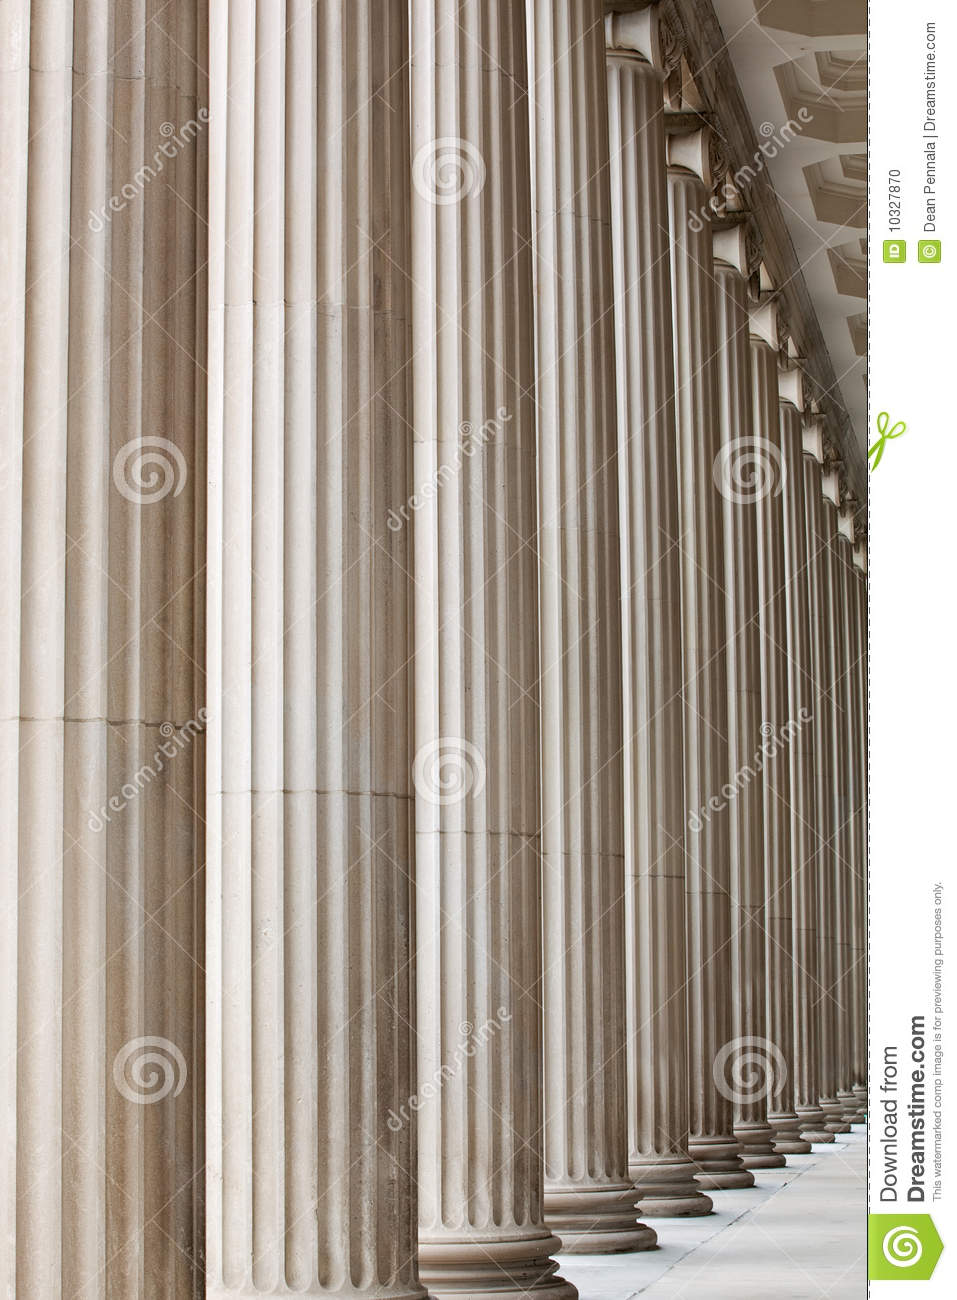 Fluted Stone Columns Stock Photo Image Of Banking